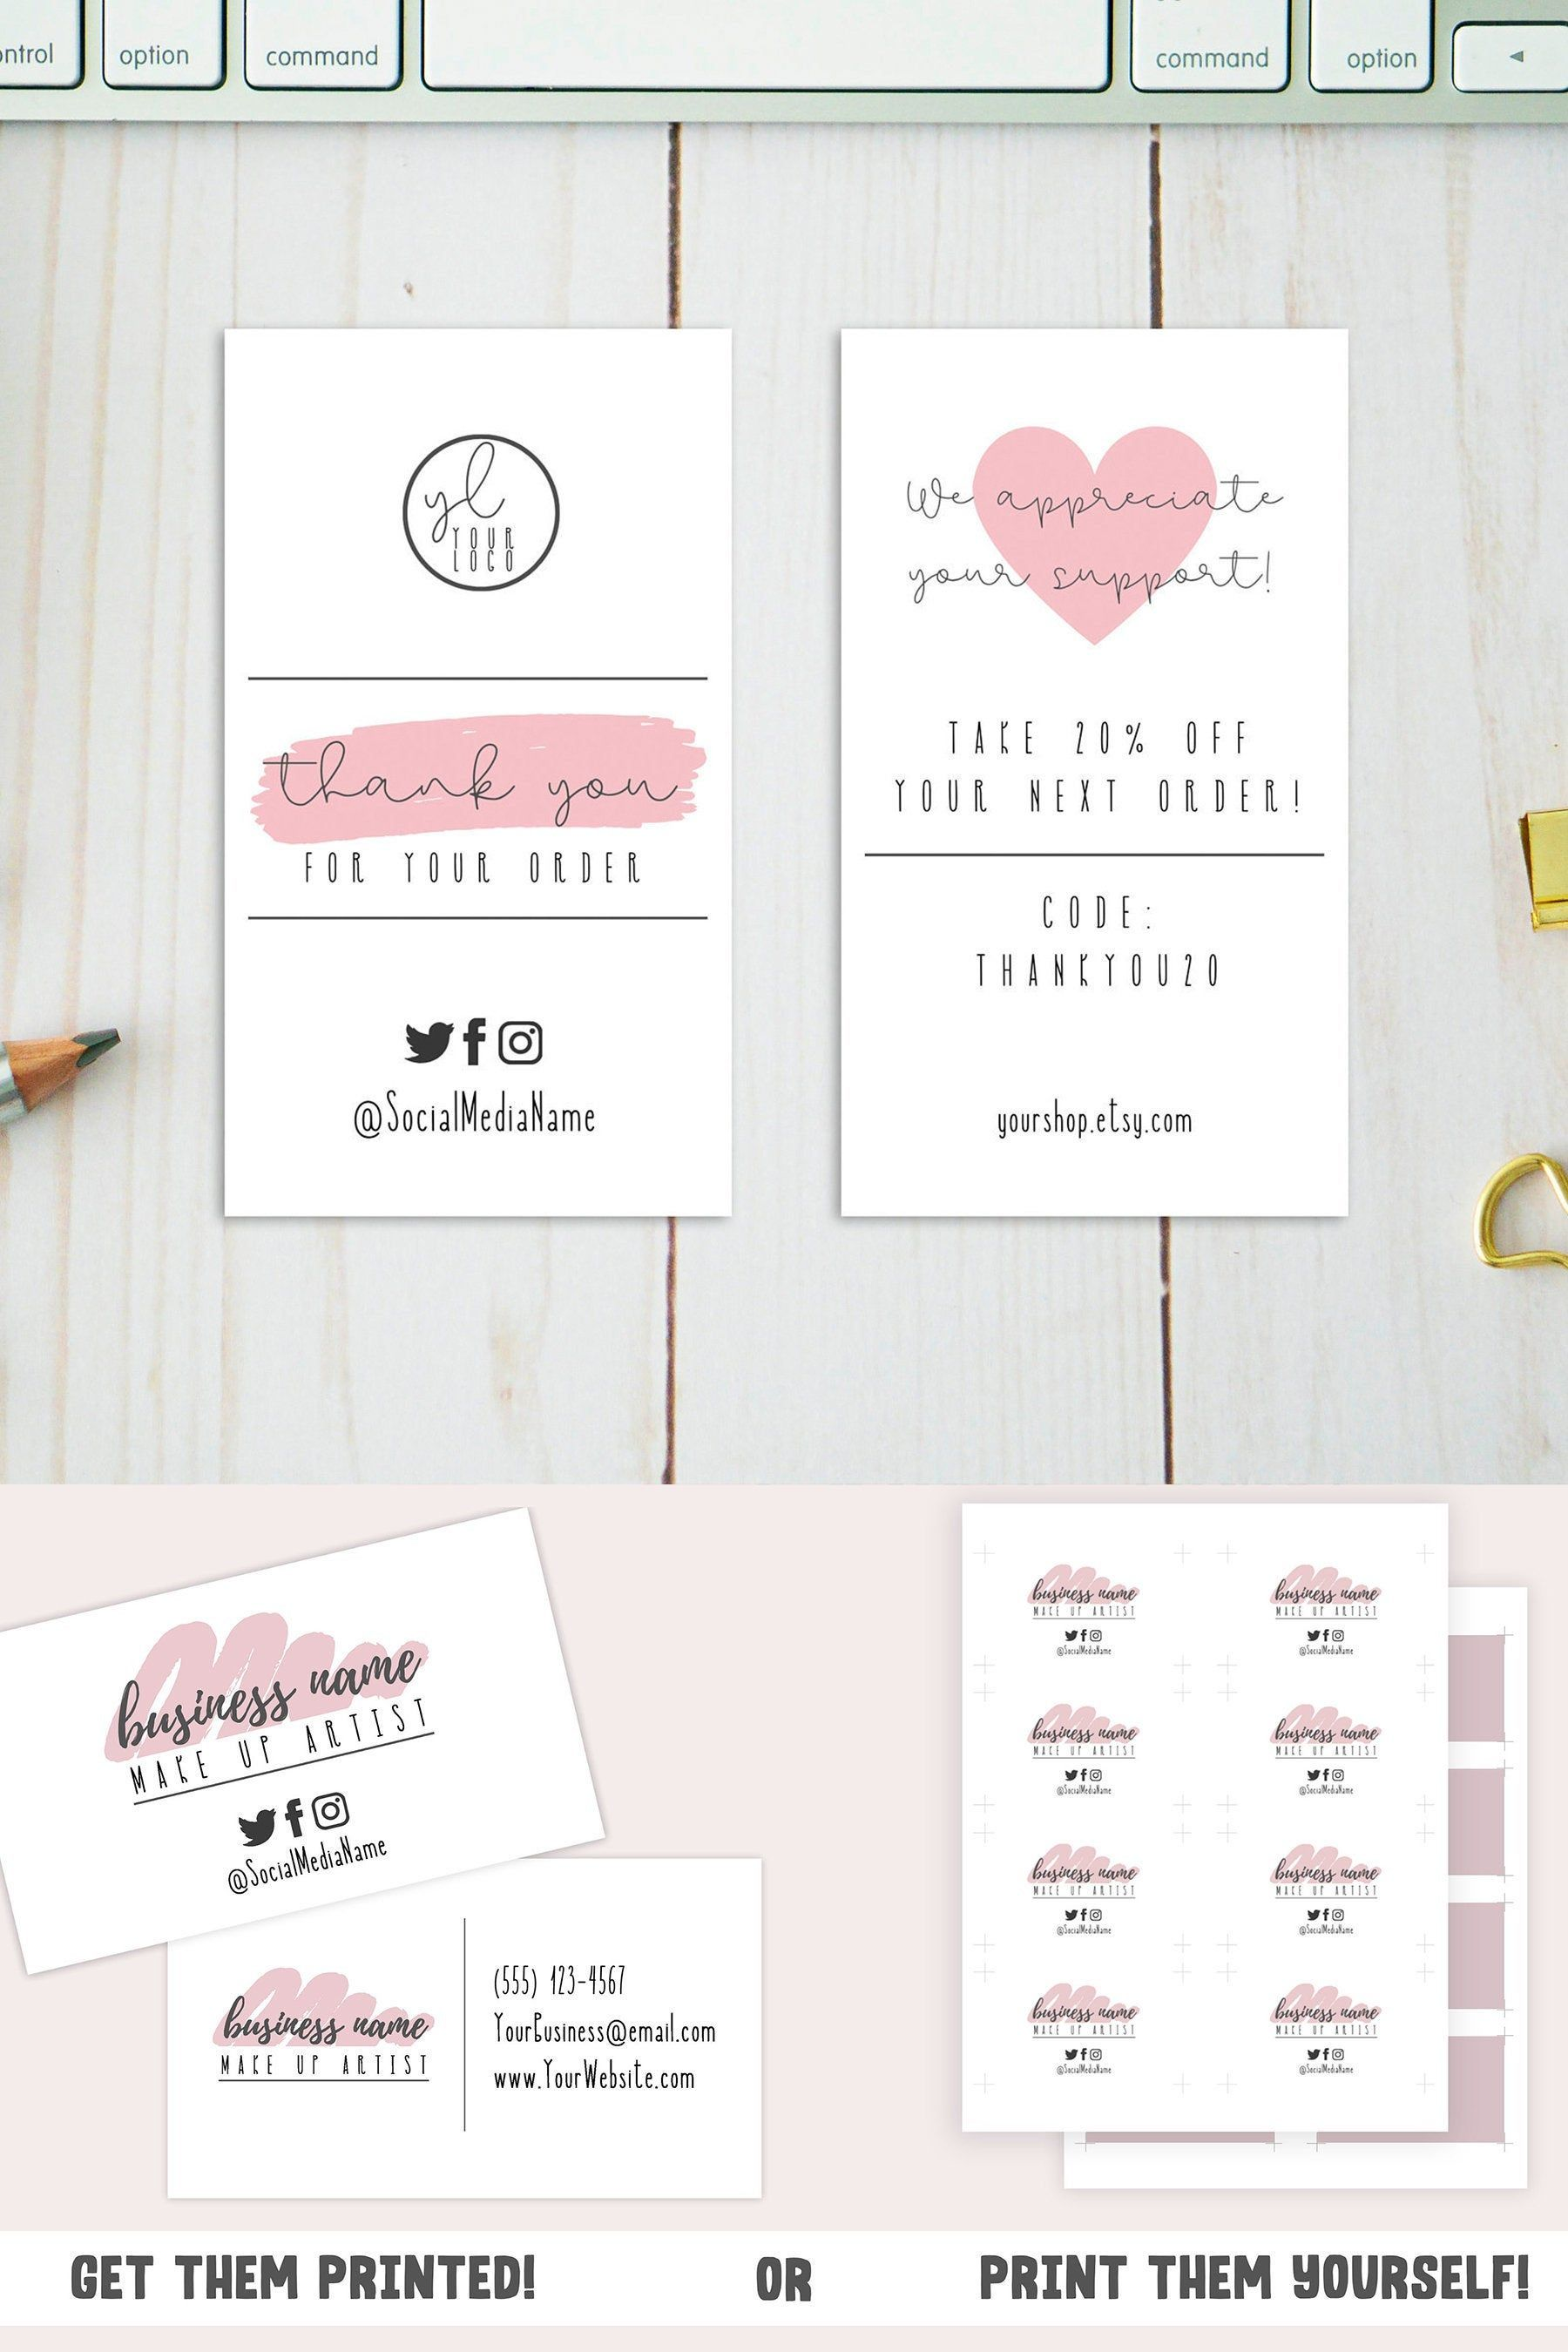 Pink Business Card Template Small Business Card Design W Etsy In 2021 Pink Business Card Small Business Cards Business Cards Diy Templates